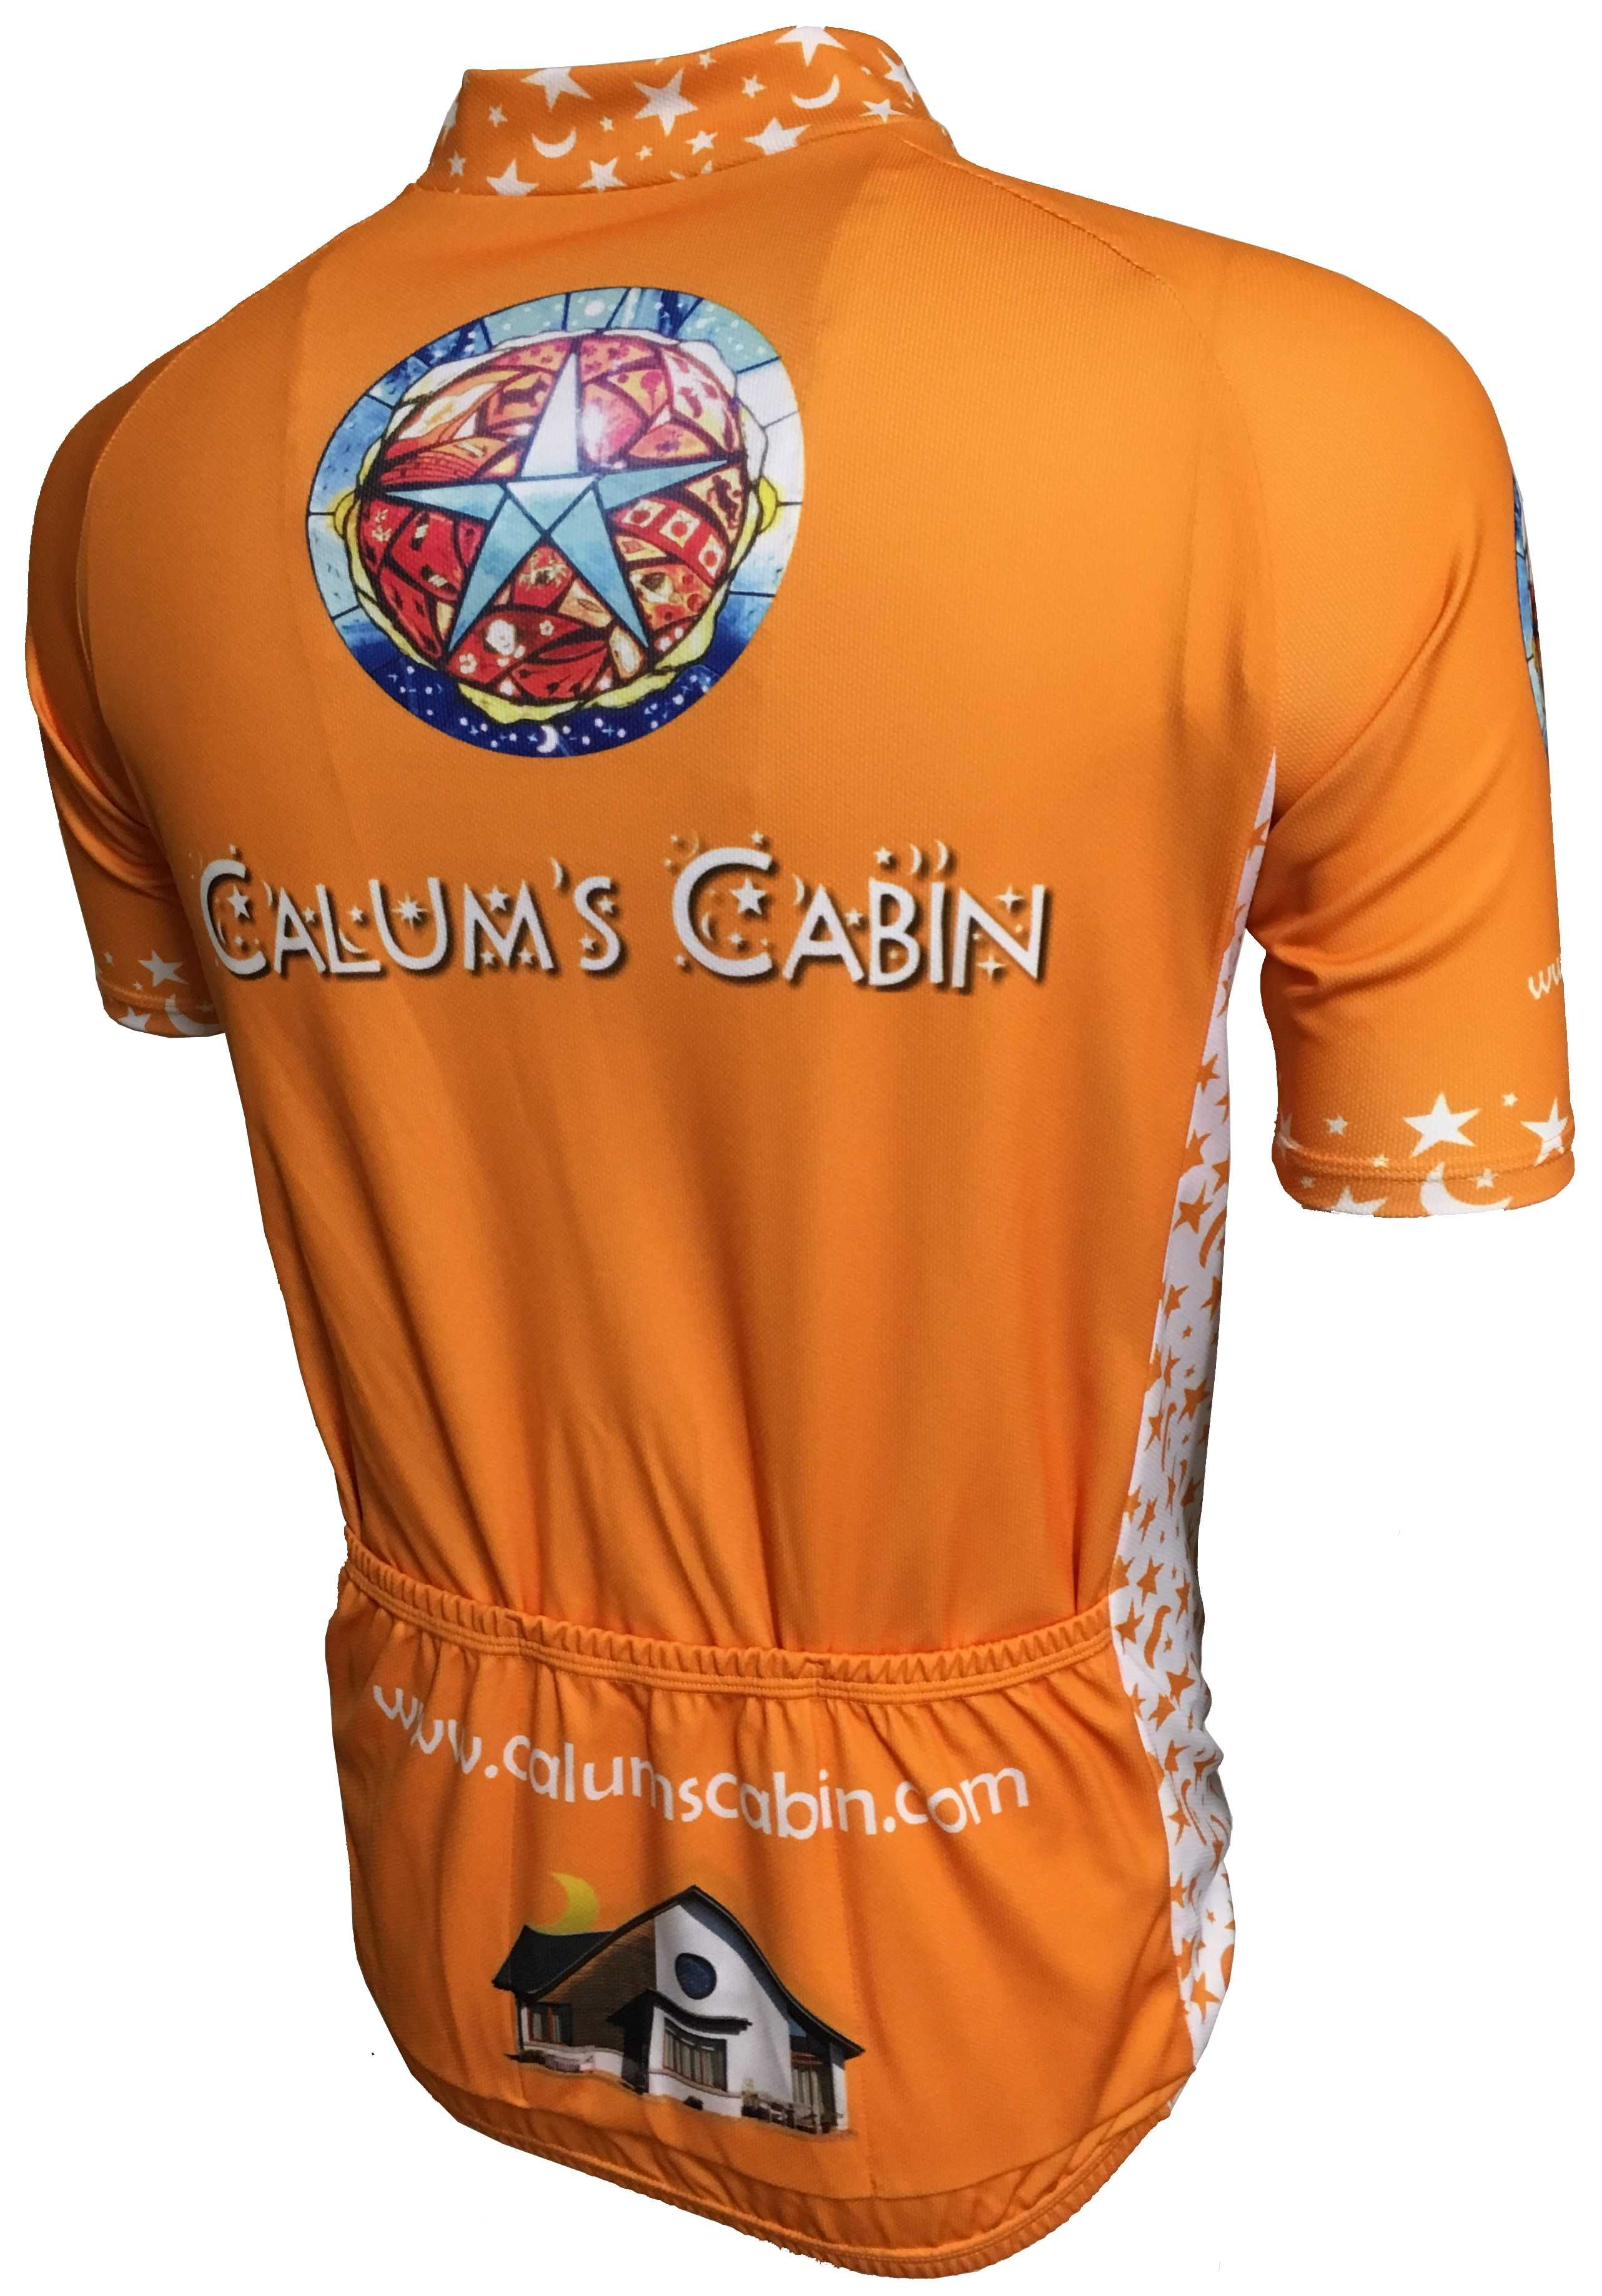 Calum's Cabin Road Cycle Jersey Back